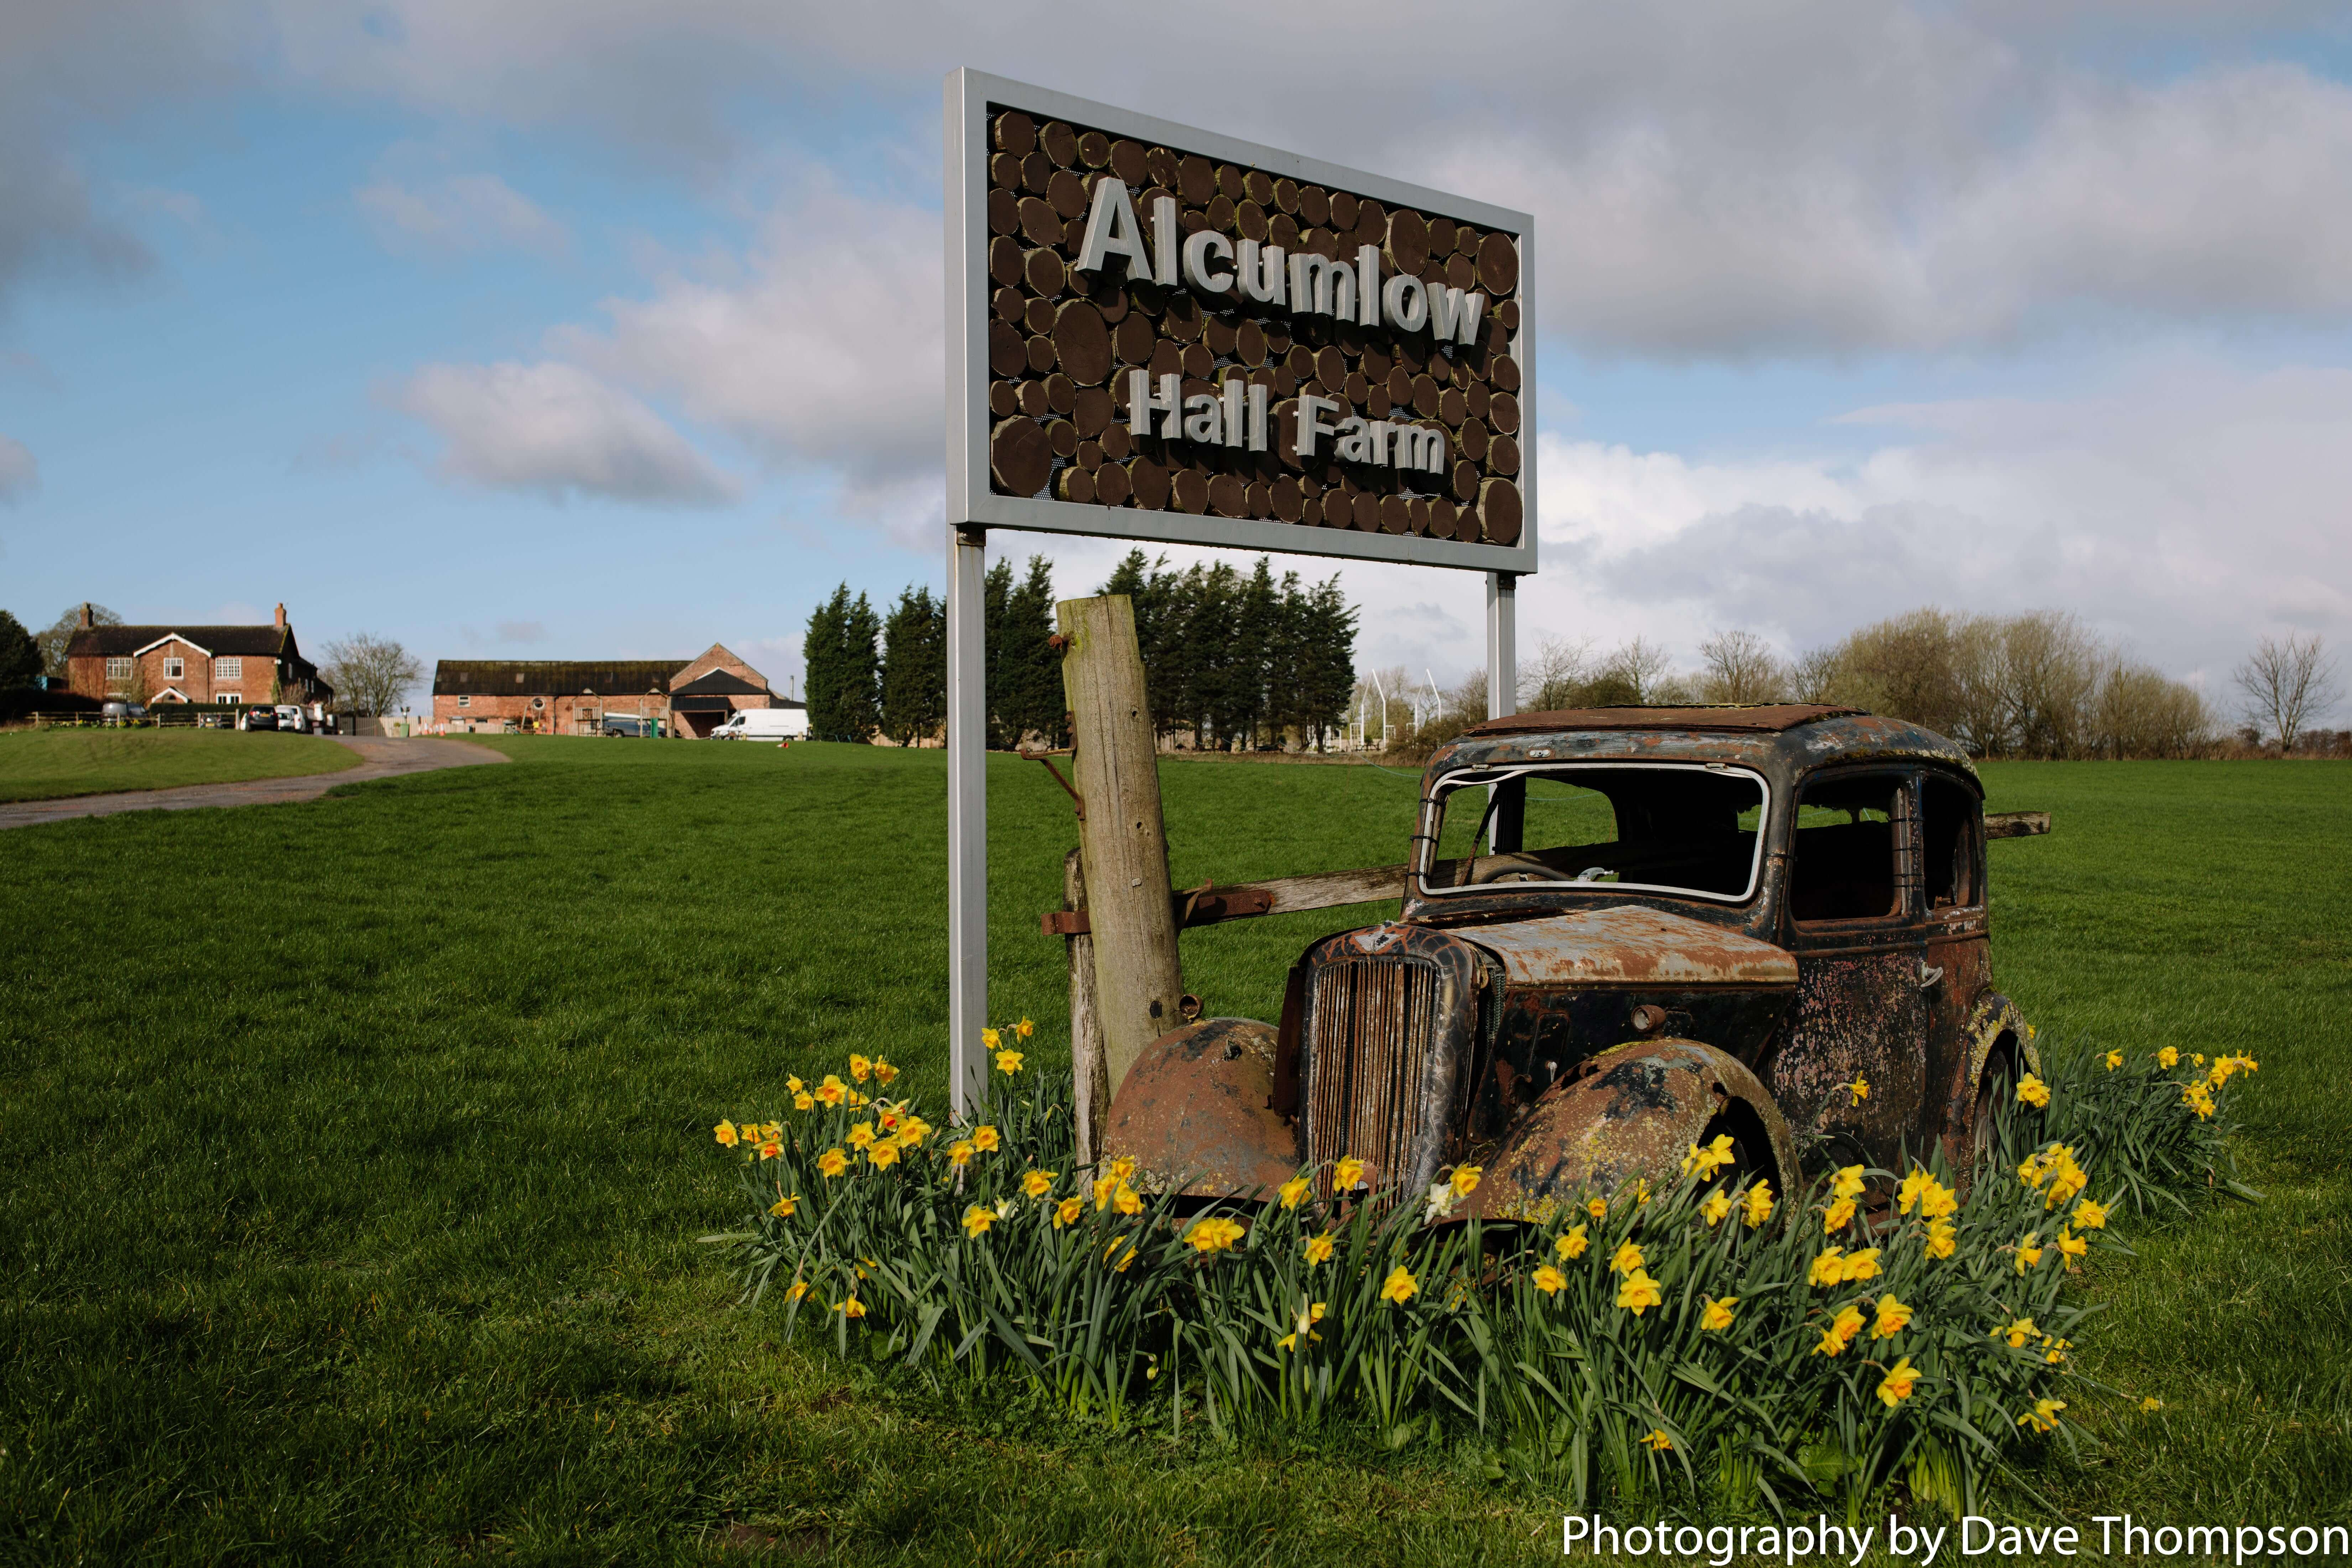 The old car at the from of Alcumlow Wedding Barn